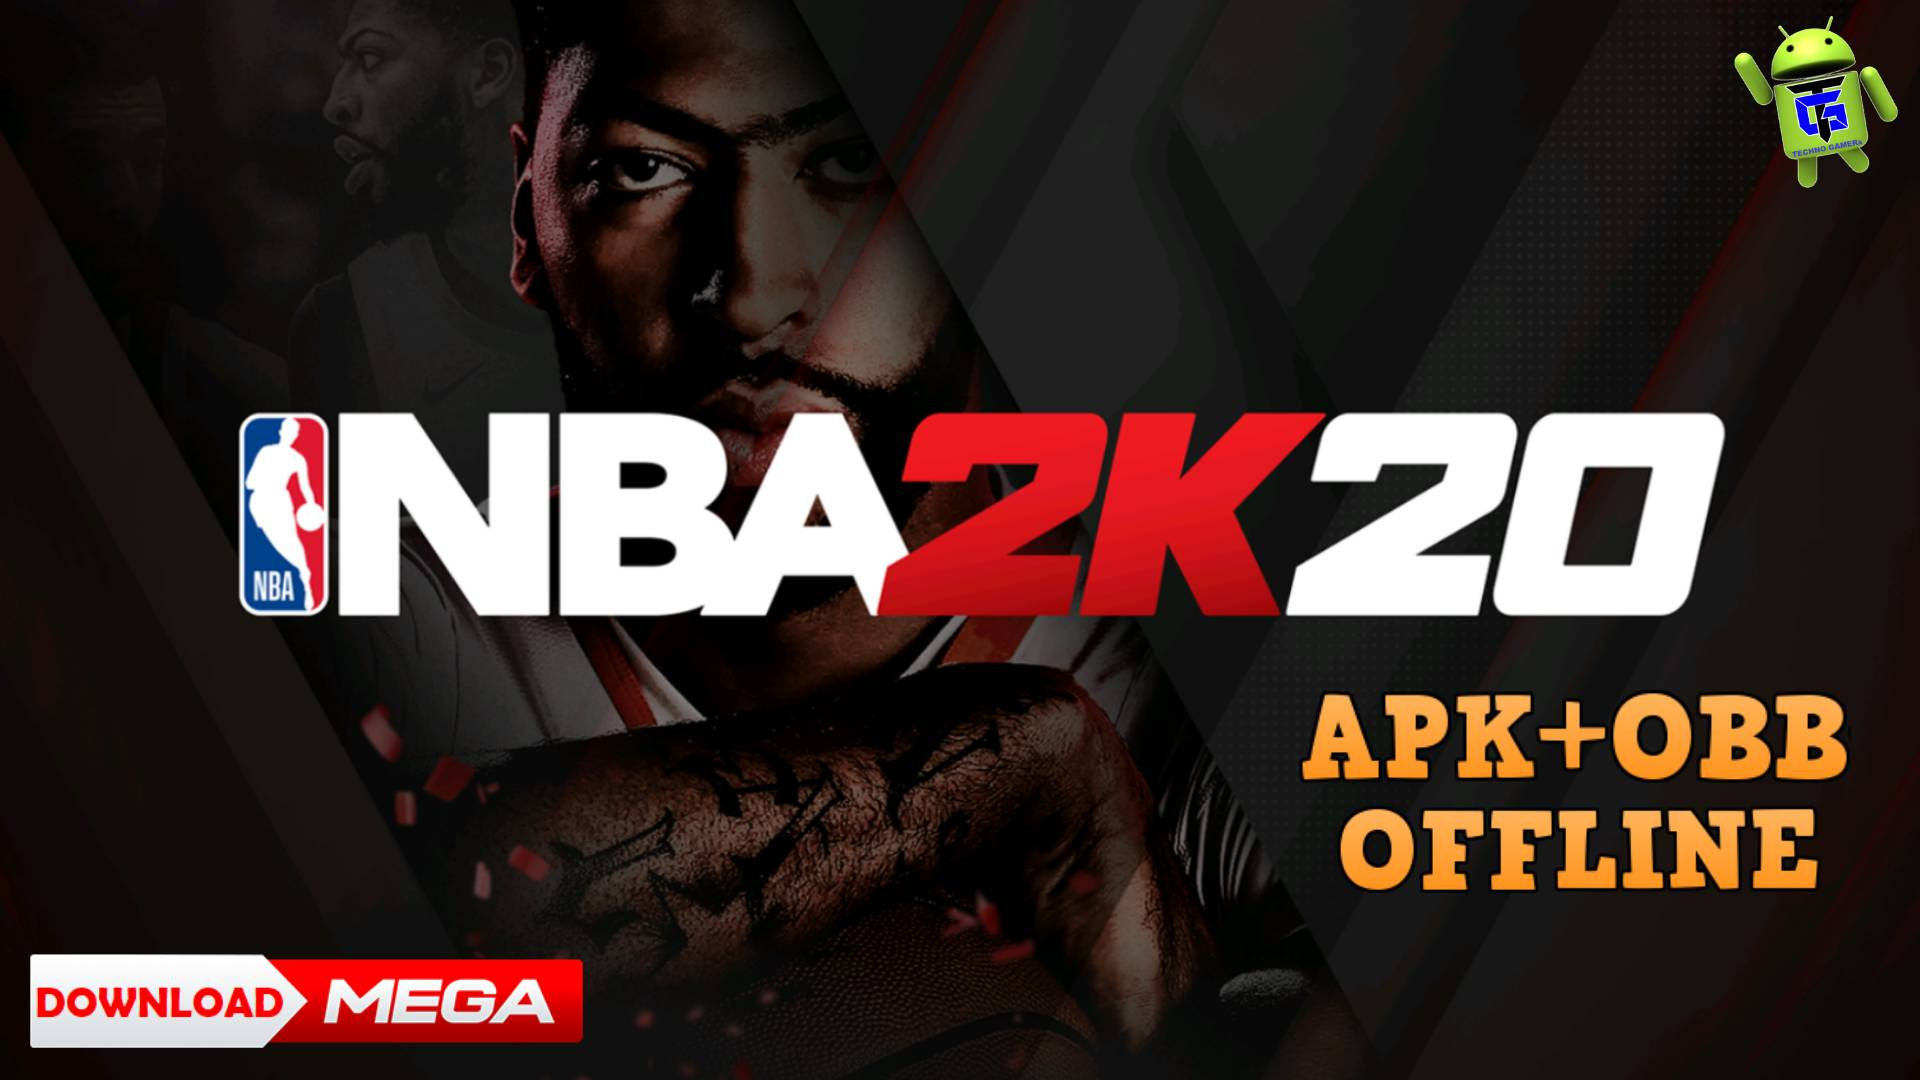 NBA 2K20 Mod APK OBB Free Download